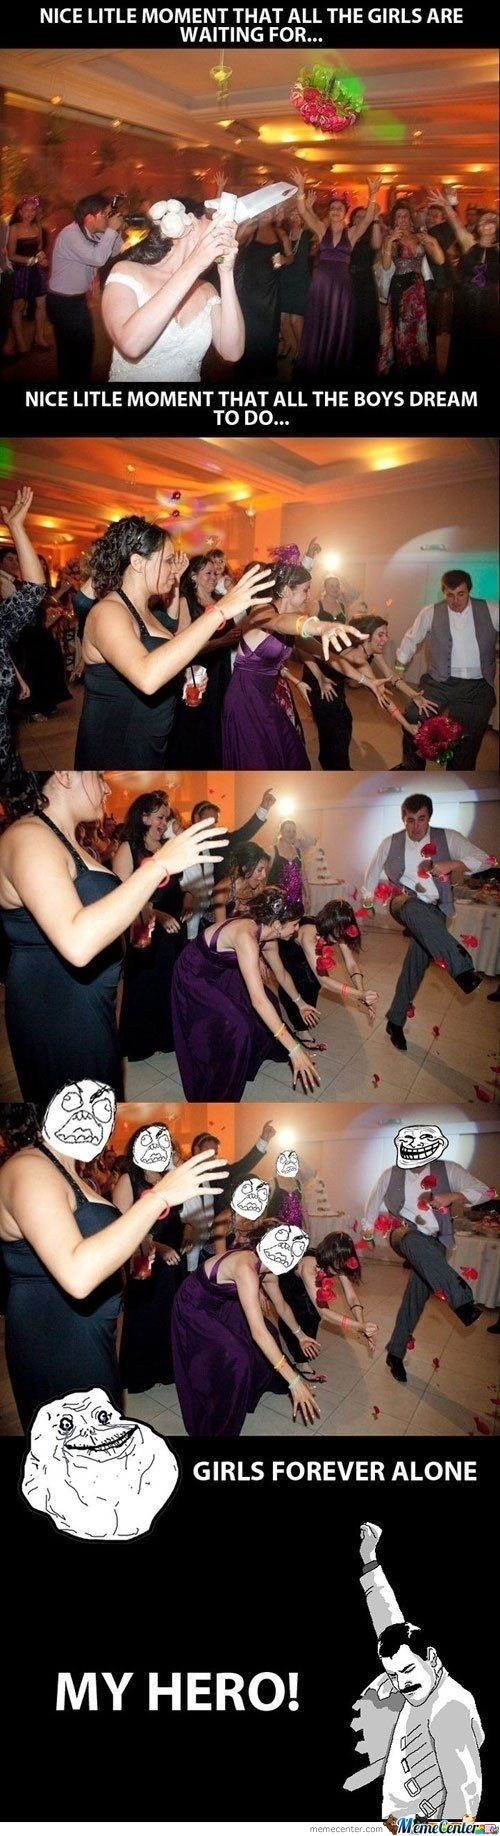 Trolling: Wedding Bouquet Throw.